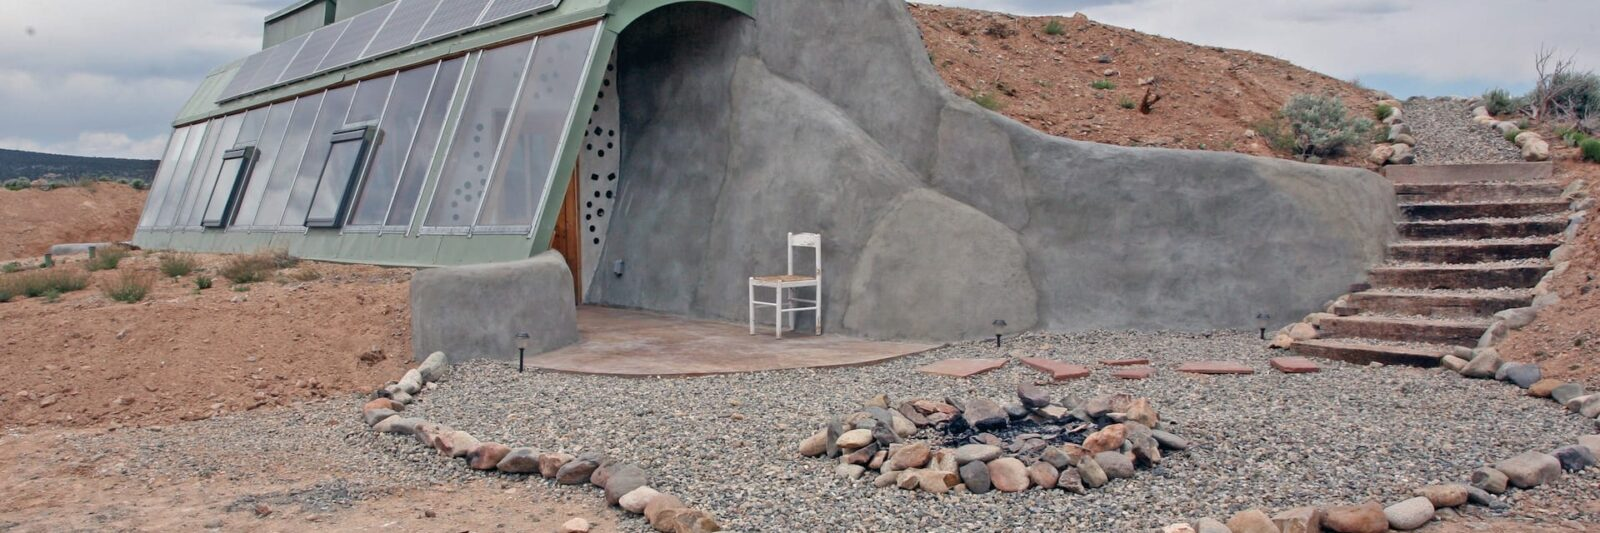 a brand new studio Earthship Airbnb in New Mexico